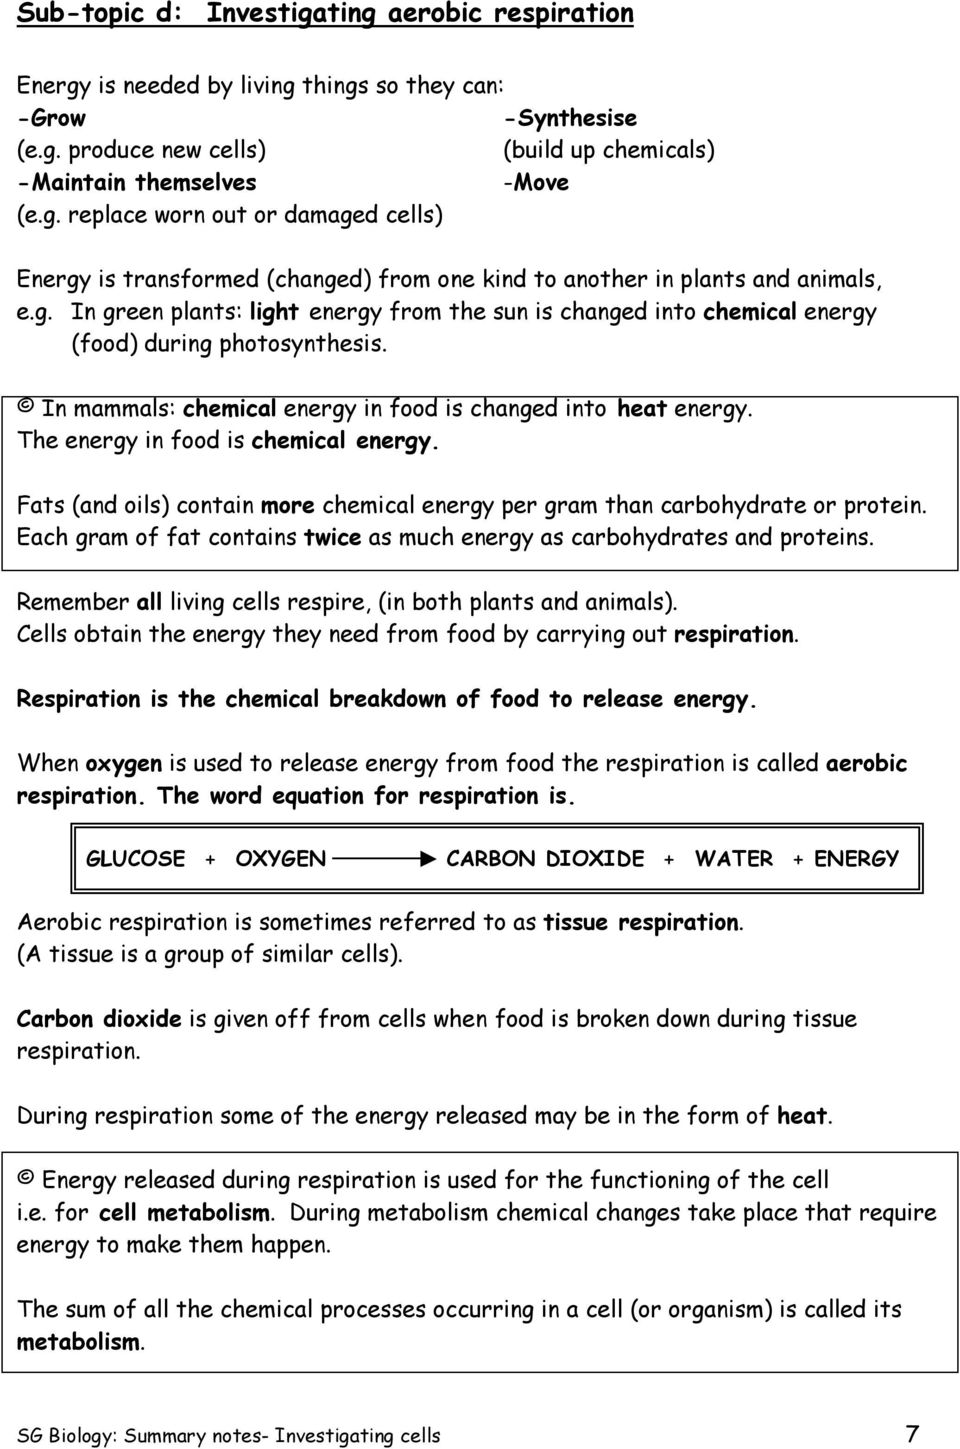 The energy in food is chemical energy. Fats (and oils) contain more chemical energy per gram than carbohydrate or protein. Each gram of fat contains twice as much energy as carbohydrates and proteins.